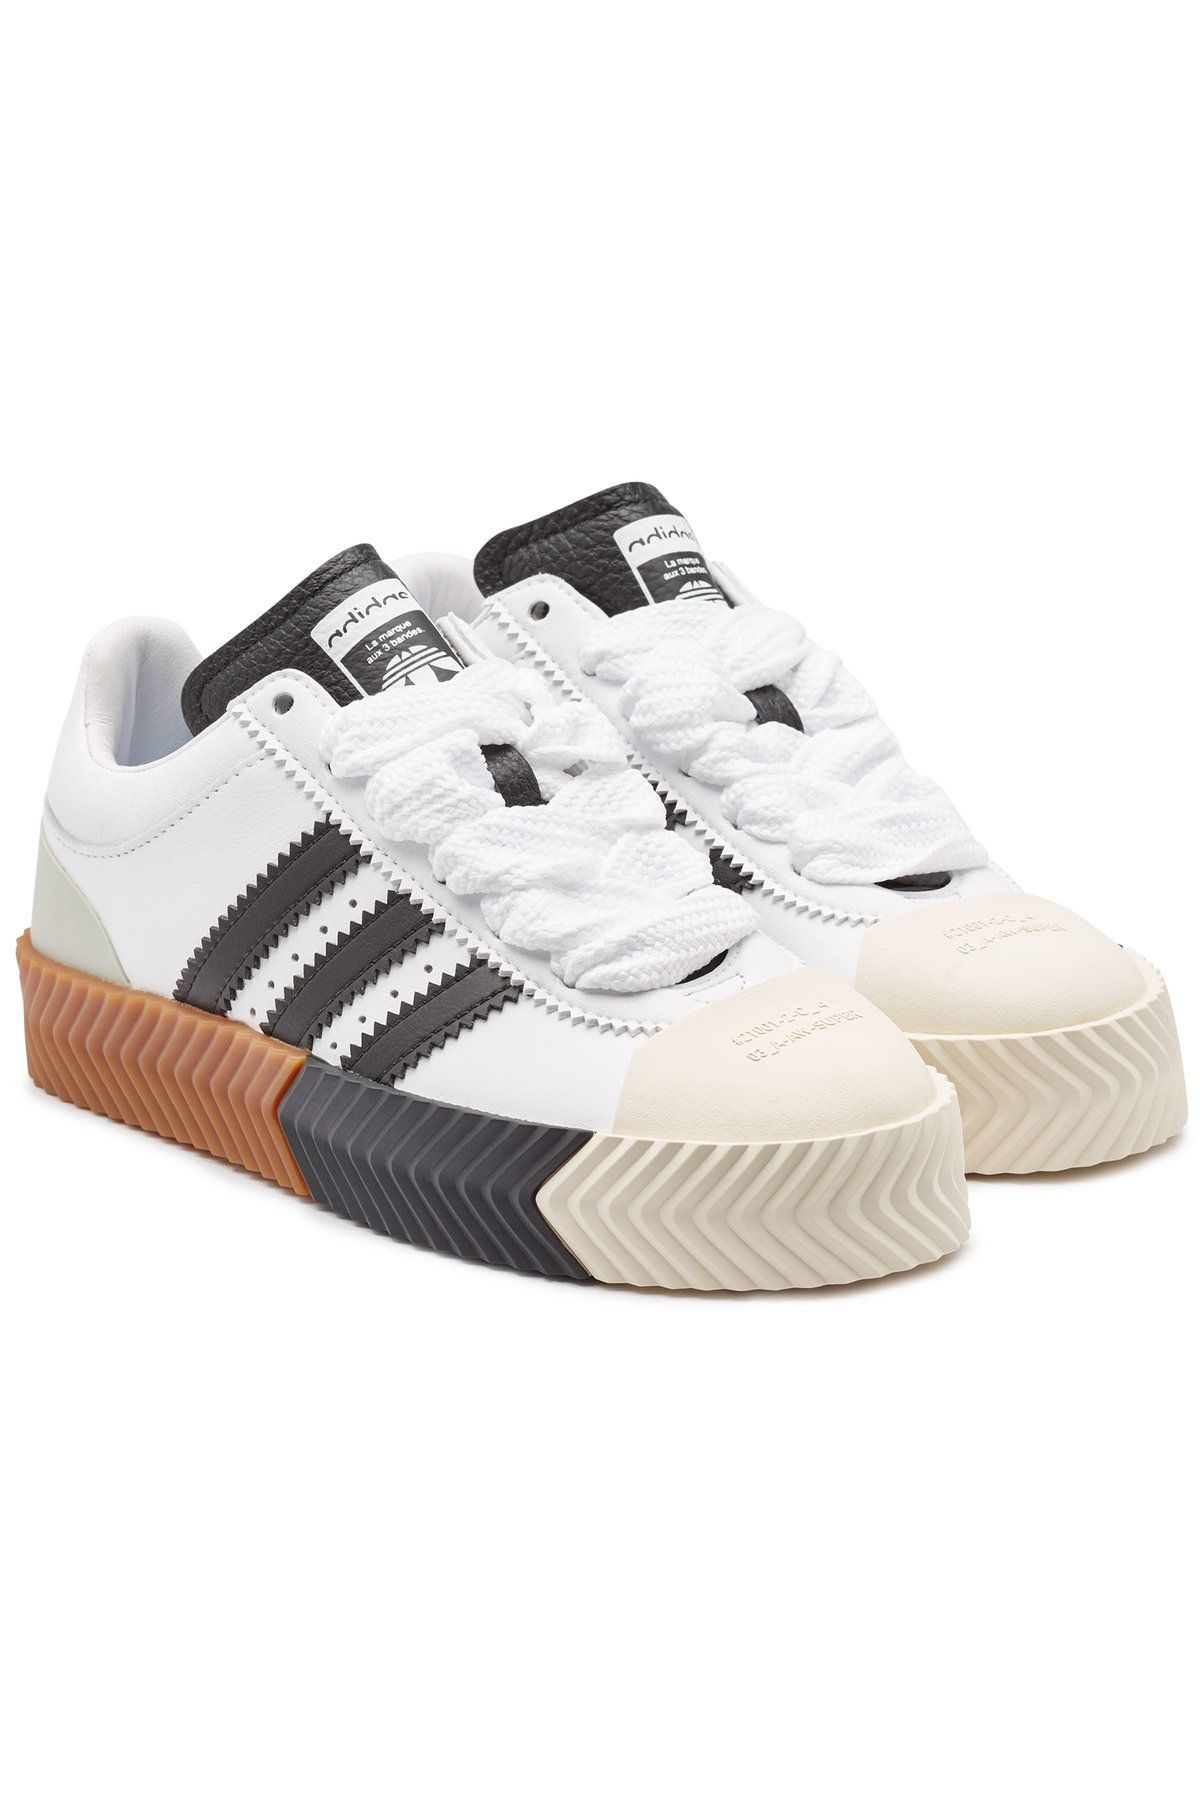 Aw Skate Super Leather Sneakers on